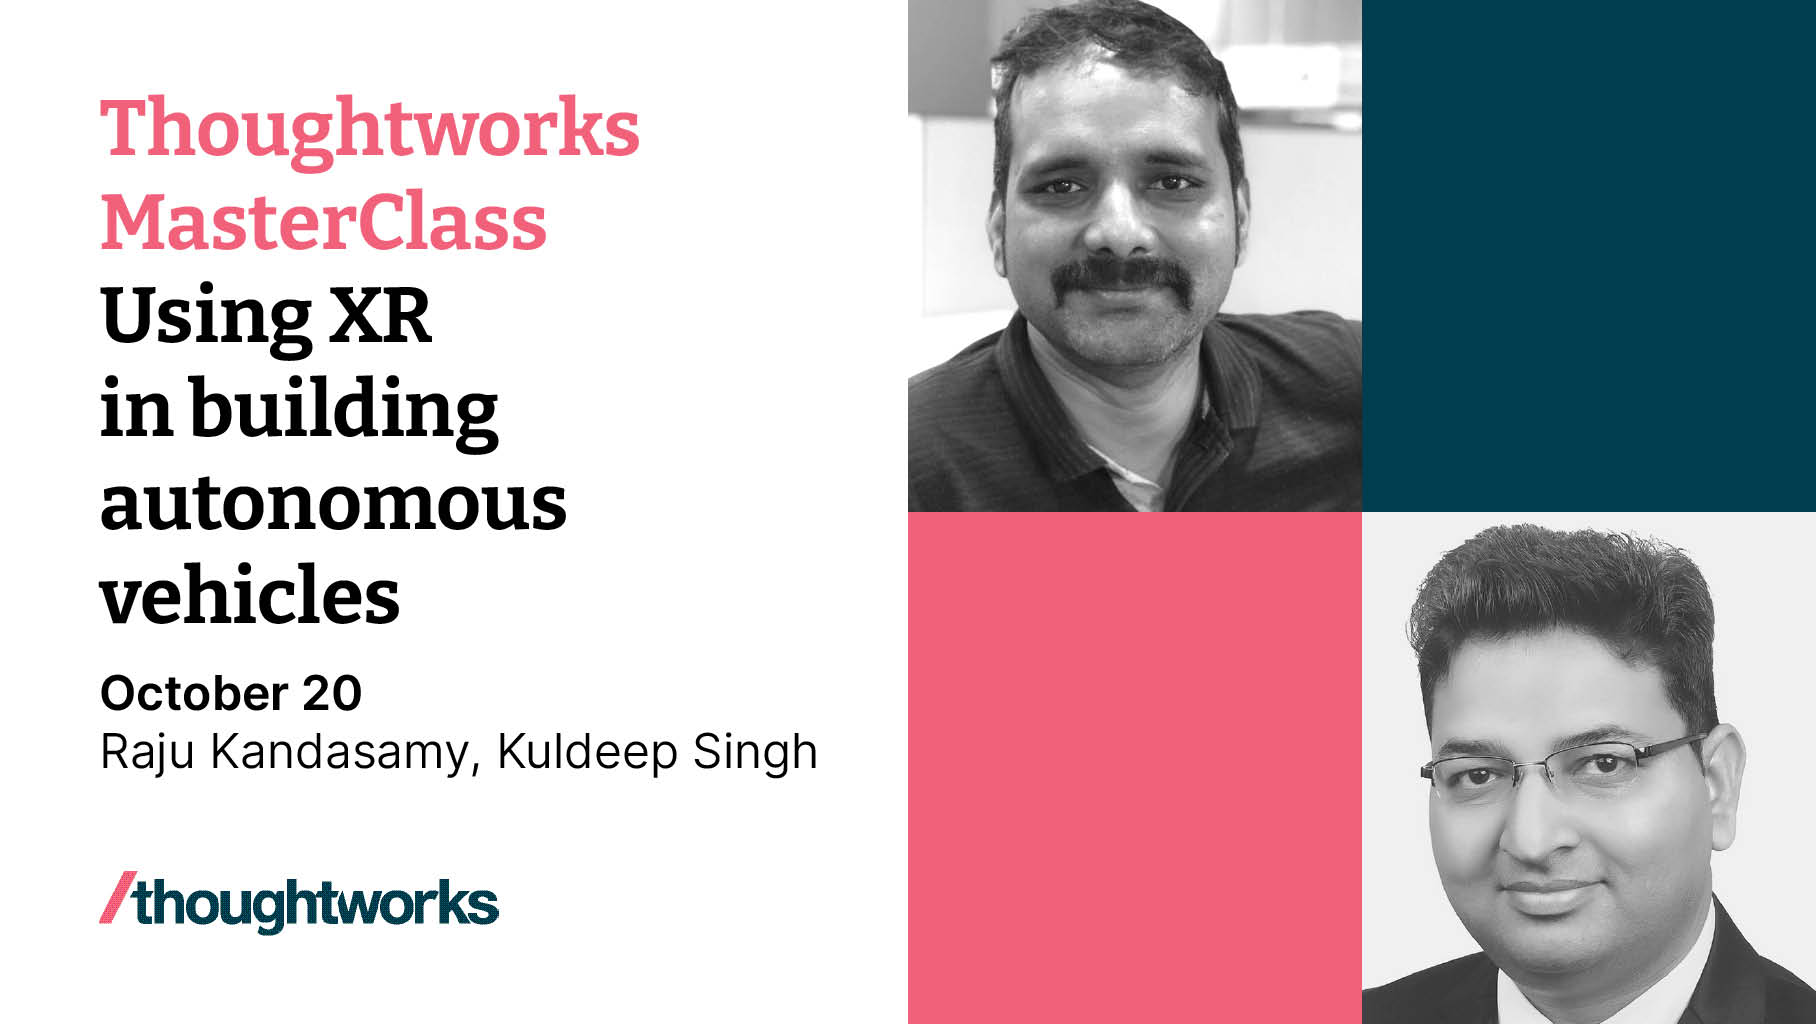 image from Speaker - Thoughtworks MasterClass-2021